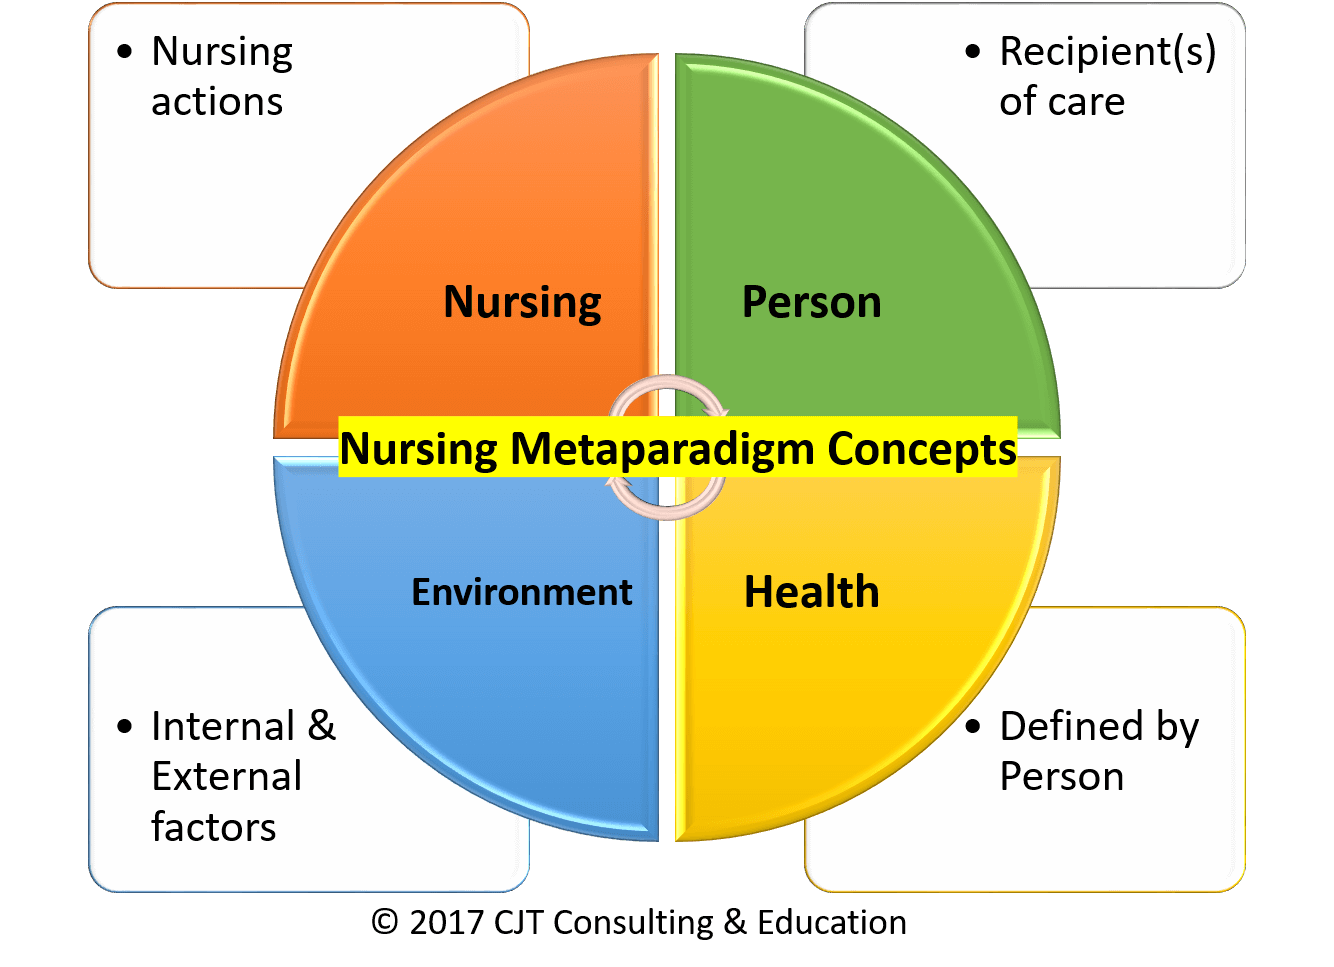 knowledge of nursing watsons theory of human caring nursing essay Creating a healing environment: an innovative educational approach for adopting jean watson's theory of human caring nursing administration implementing watson's human caring theory to how nurses can utilize theoretical knowledge watson, j (2006) caring as an ethical guide to.